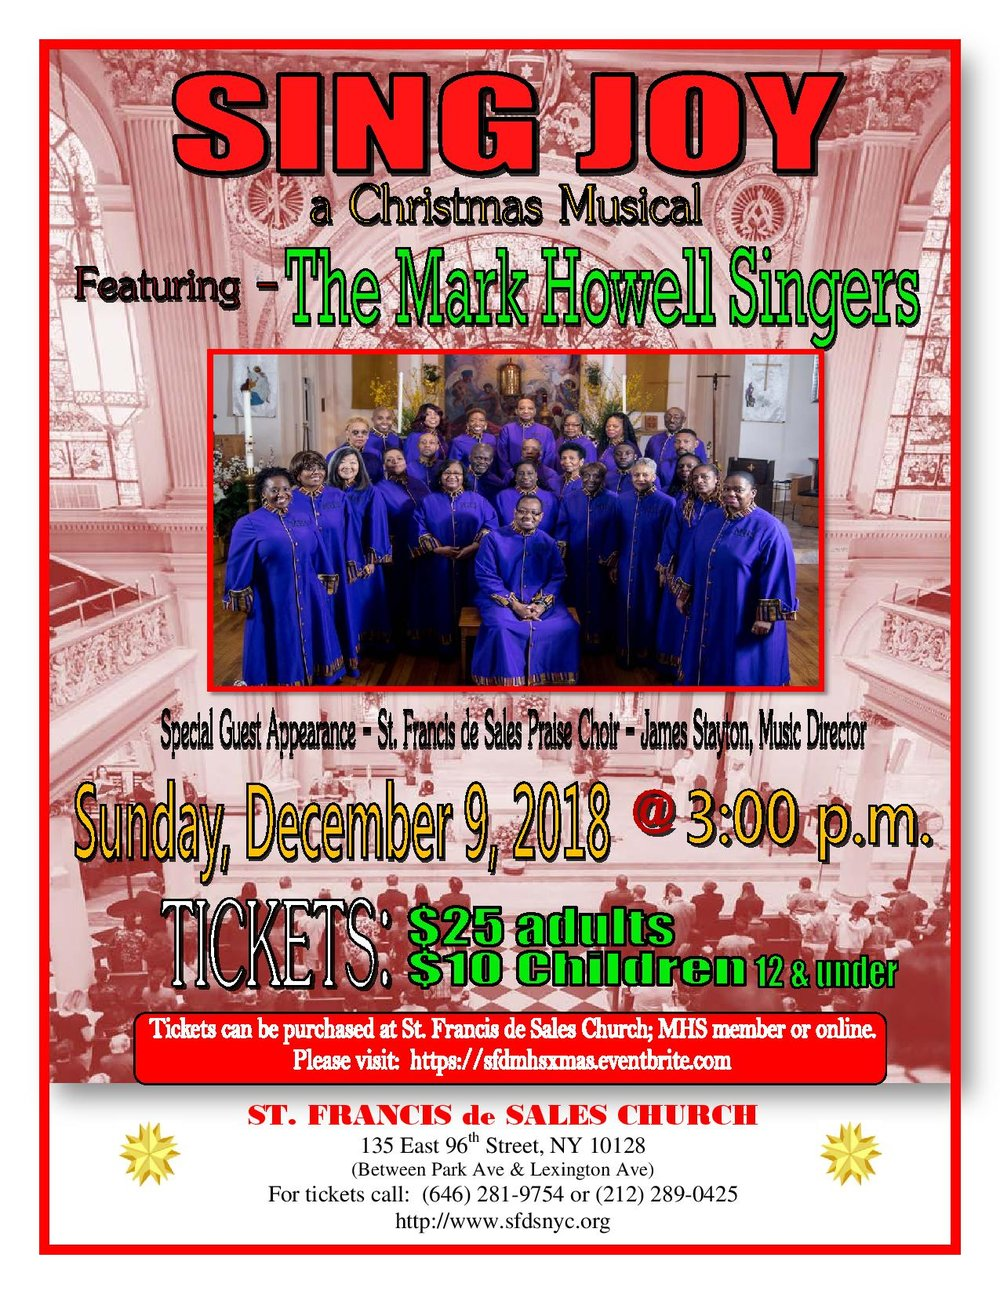 JOIN US FOR WHAT IS SURE TO BE AN AMAZING MUSICAL AFTERNOON!!!